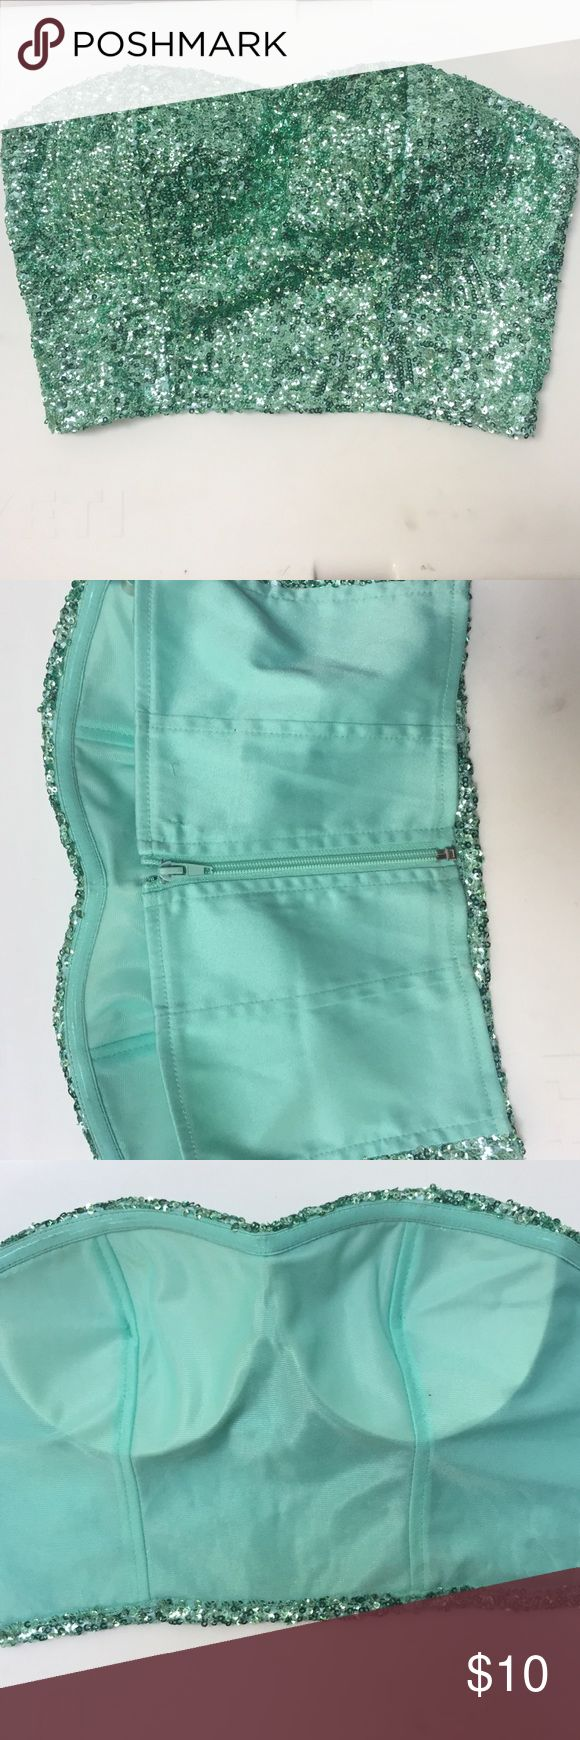 Charlotte Russe Sequin Crop Top Size Small Charlotte Russe Crop Top. Covered in Green sequins. Size Small. Had boning and cupping for support. Super cute and perfect for mermaid costume! Charlotte Russe Tops Crop Tops